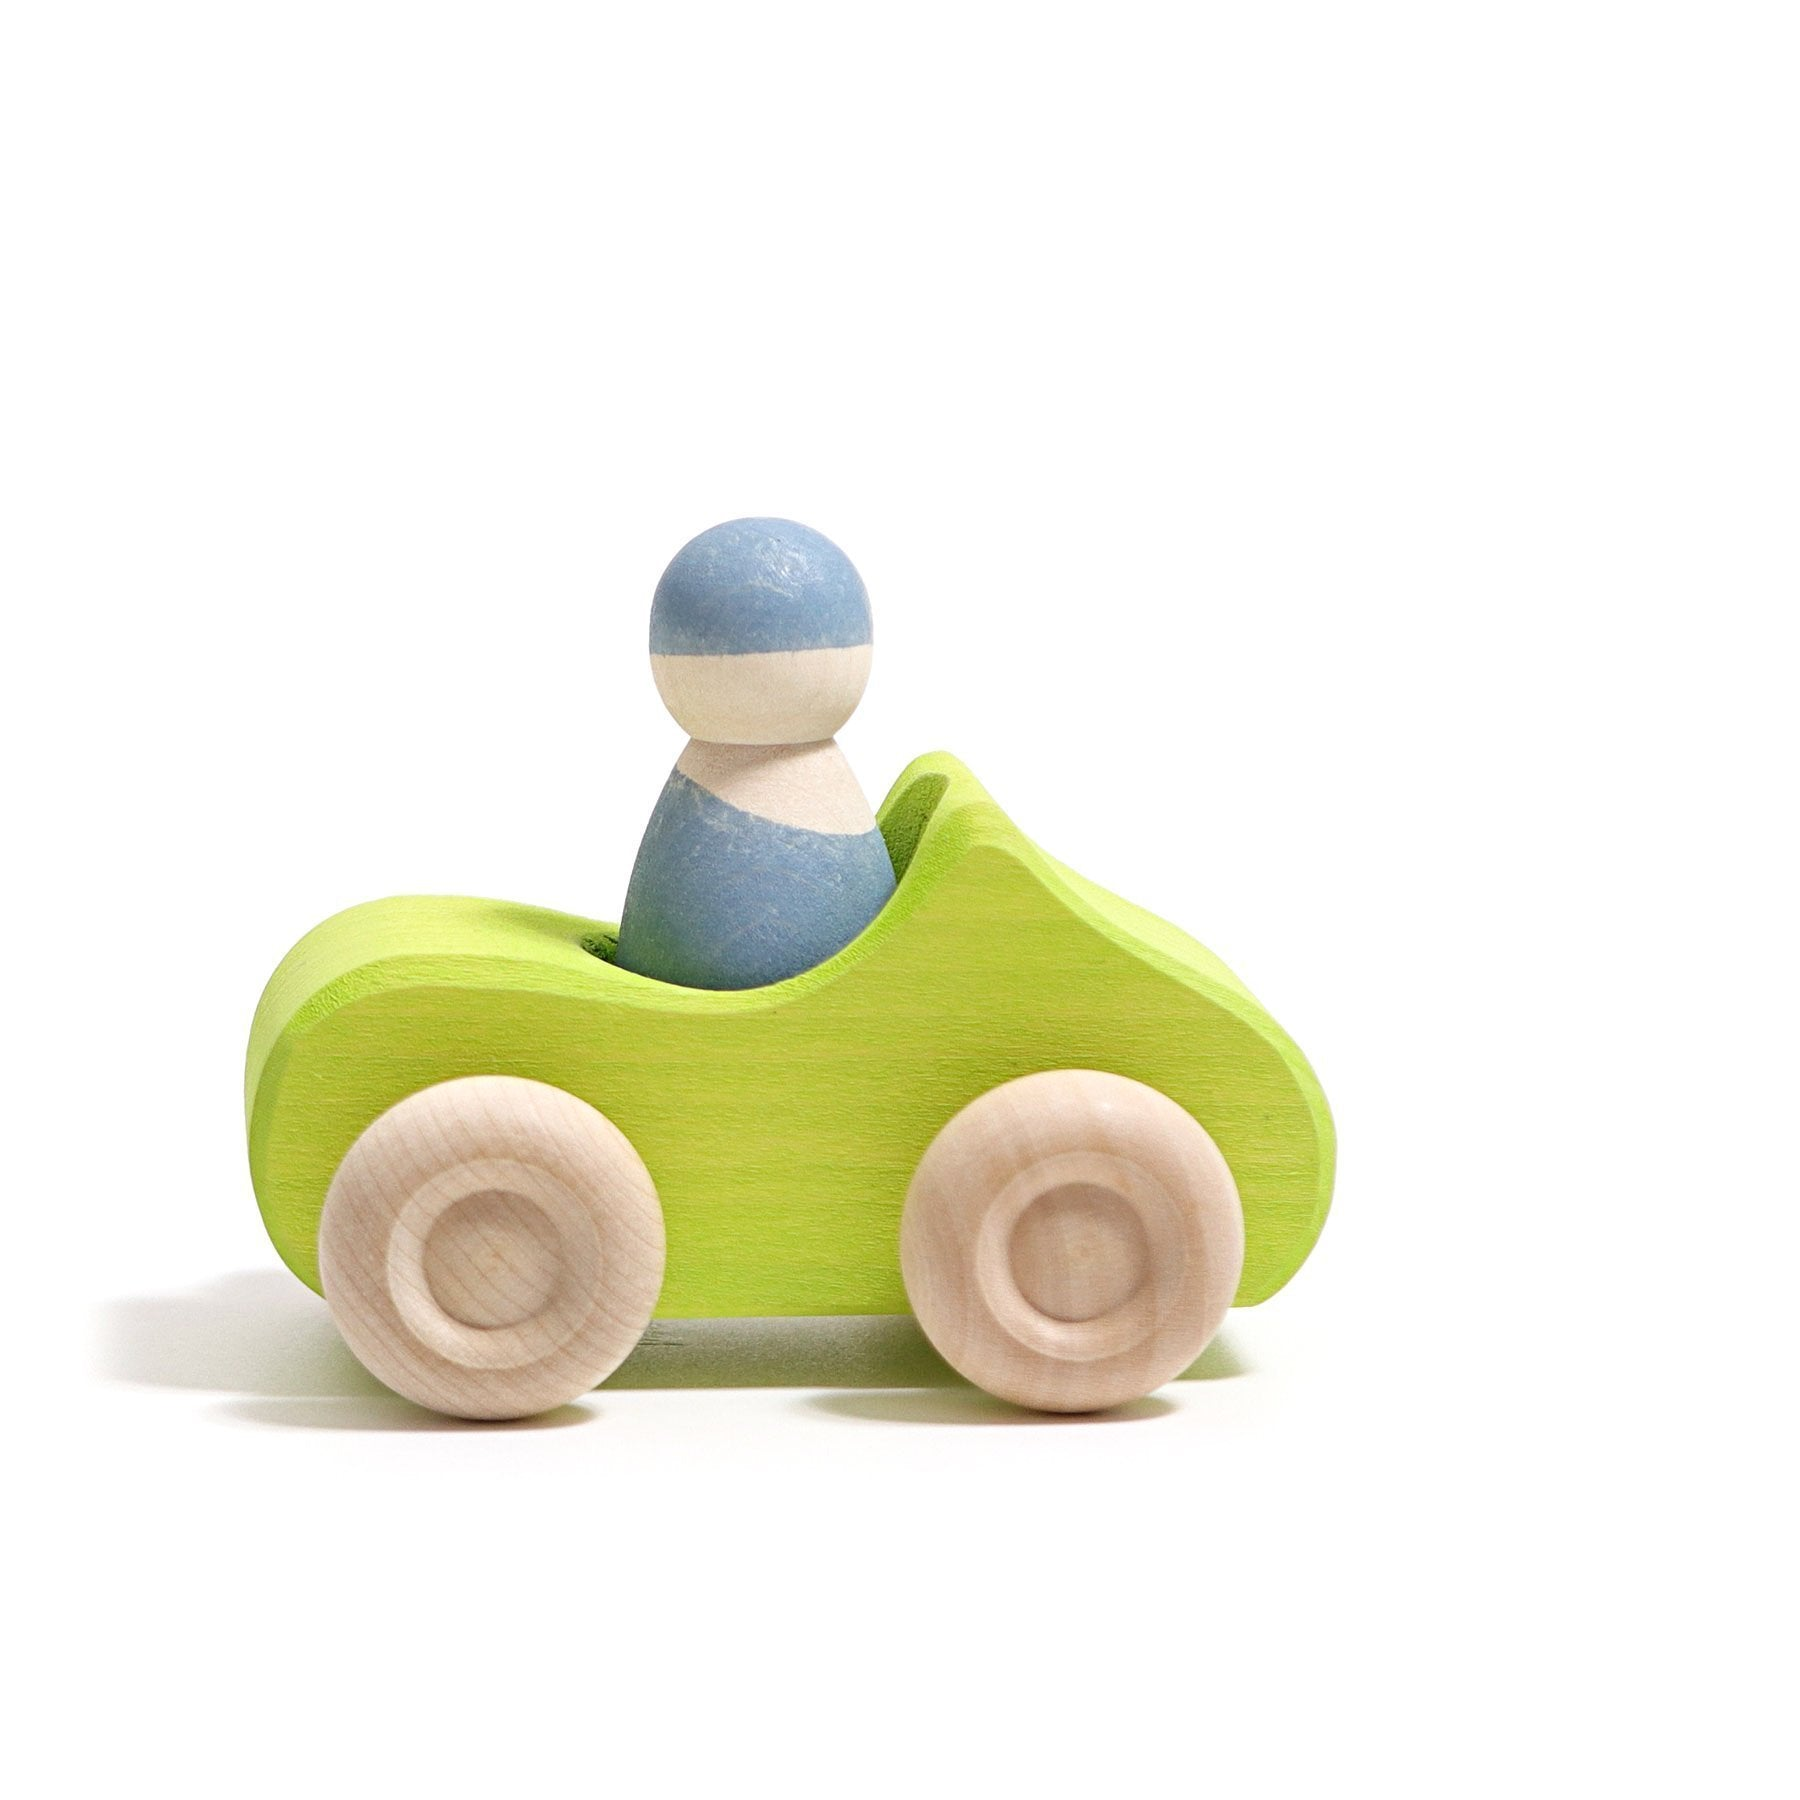 Grimms Small Green Convertible Car Grimms Wooden Toys at Little Earth Nest Eco Shop